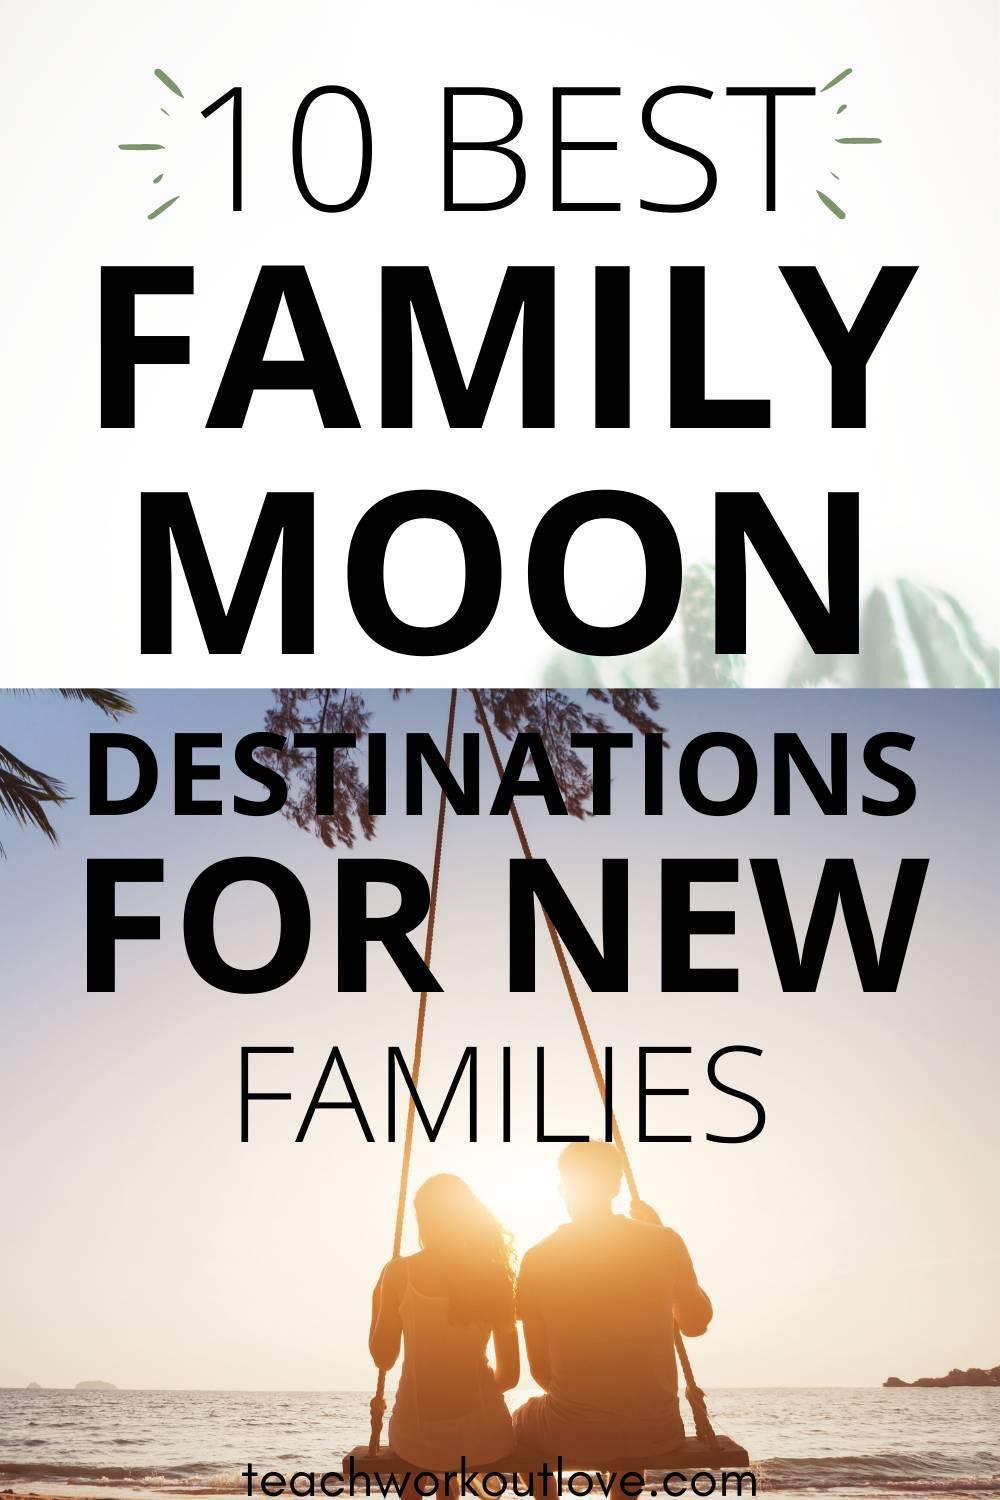 Planning to bring your kids on your honeymoon? Check out here the familymoon ideas and find the best familymoon destinations.